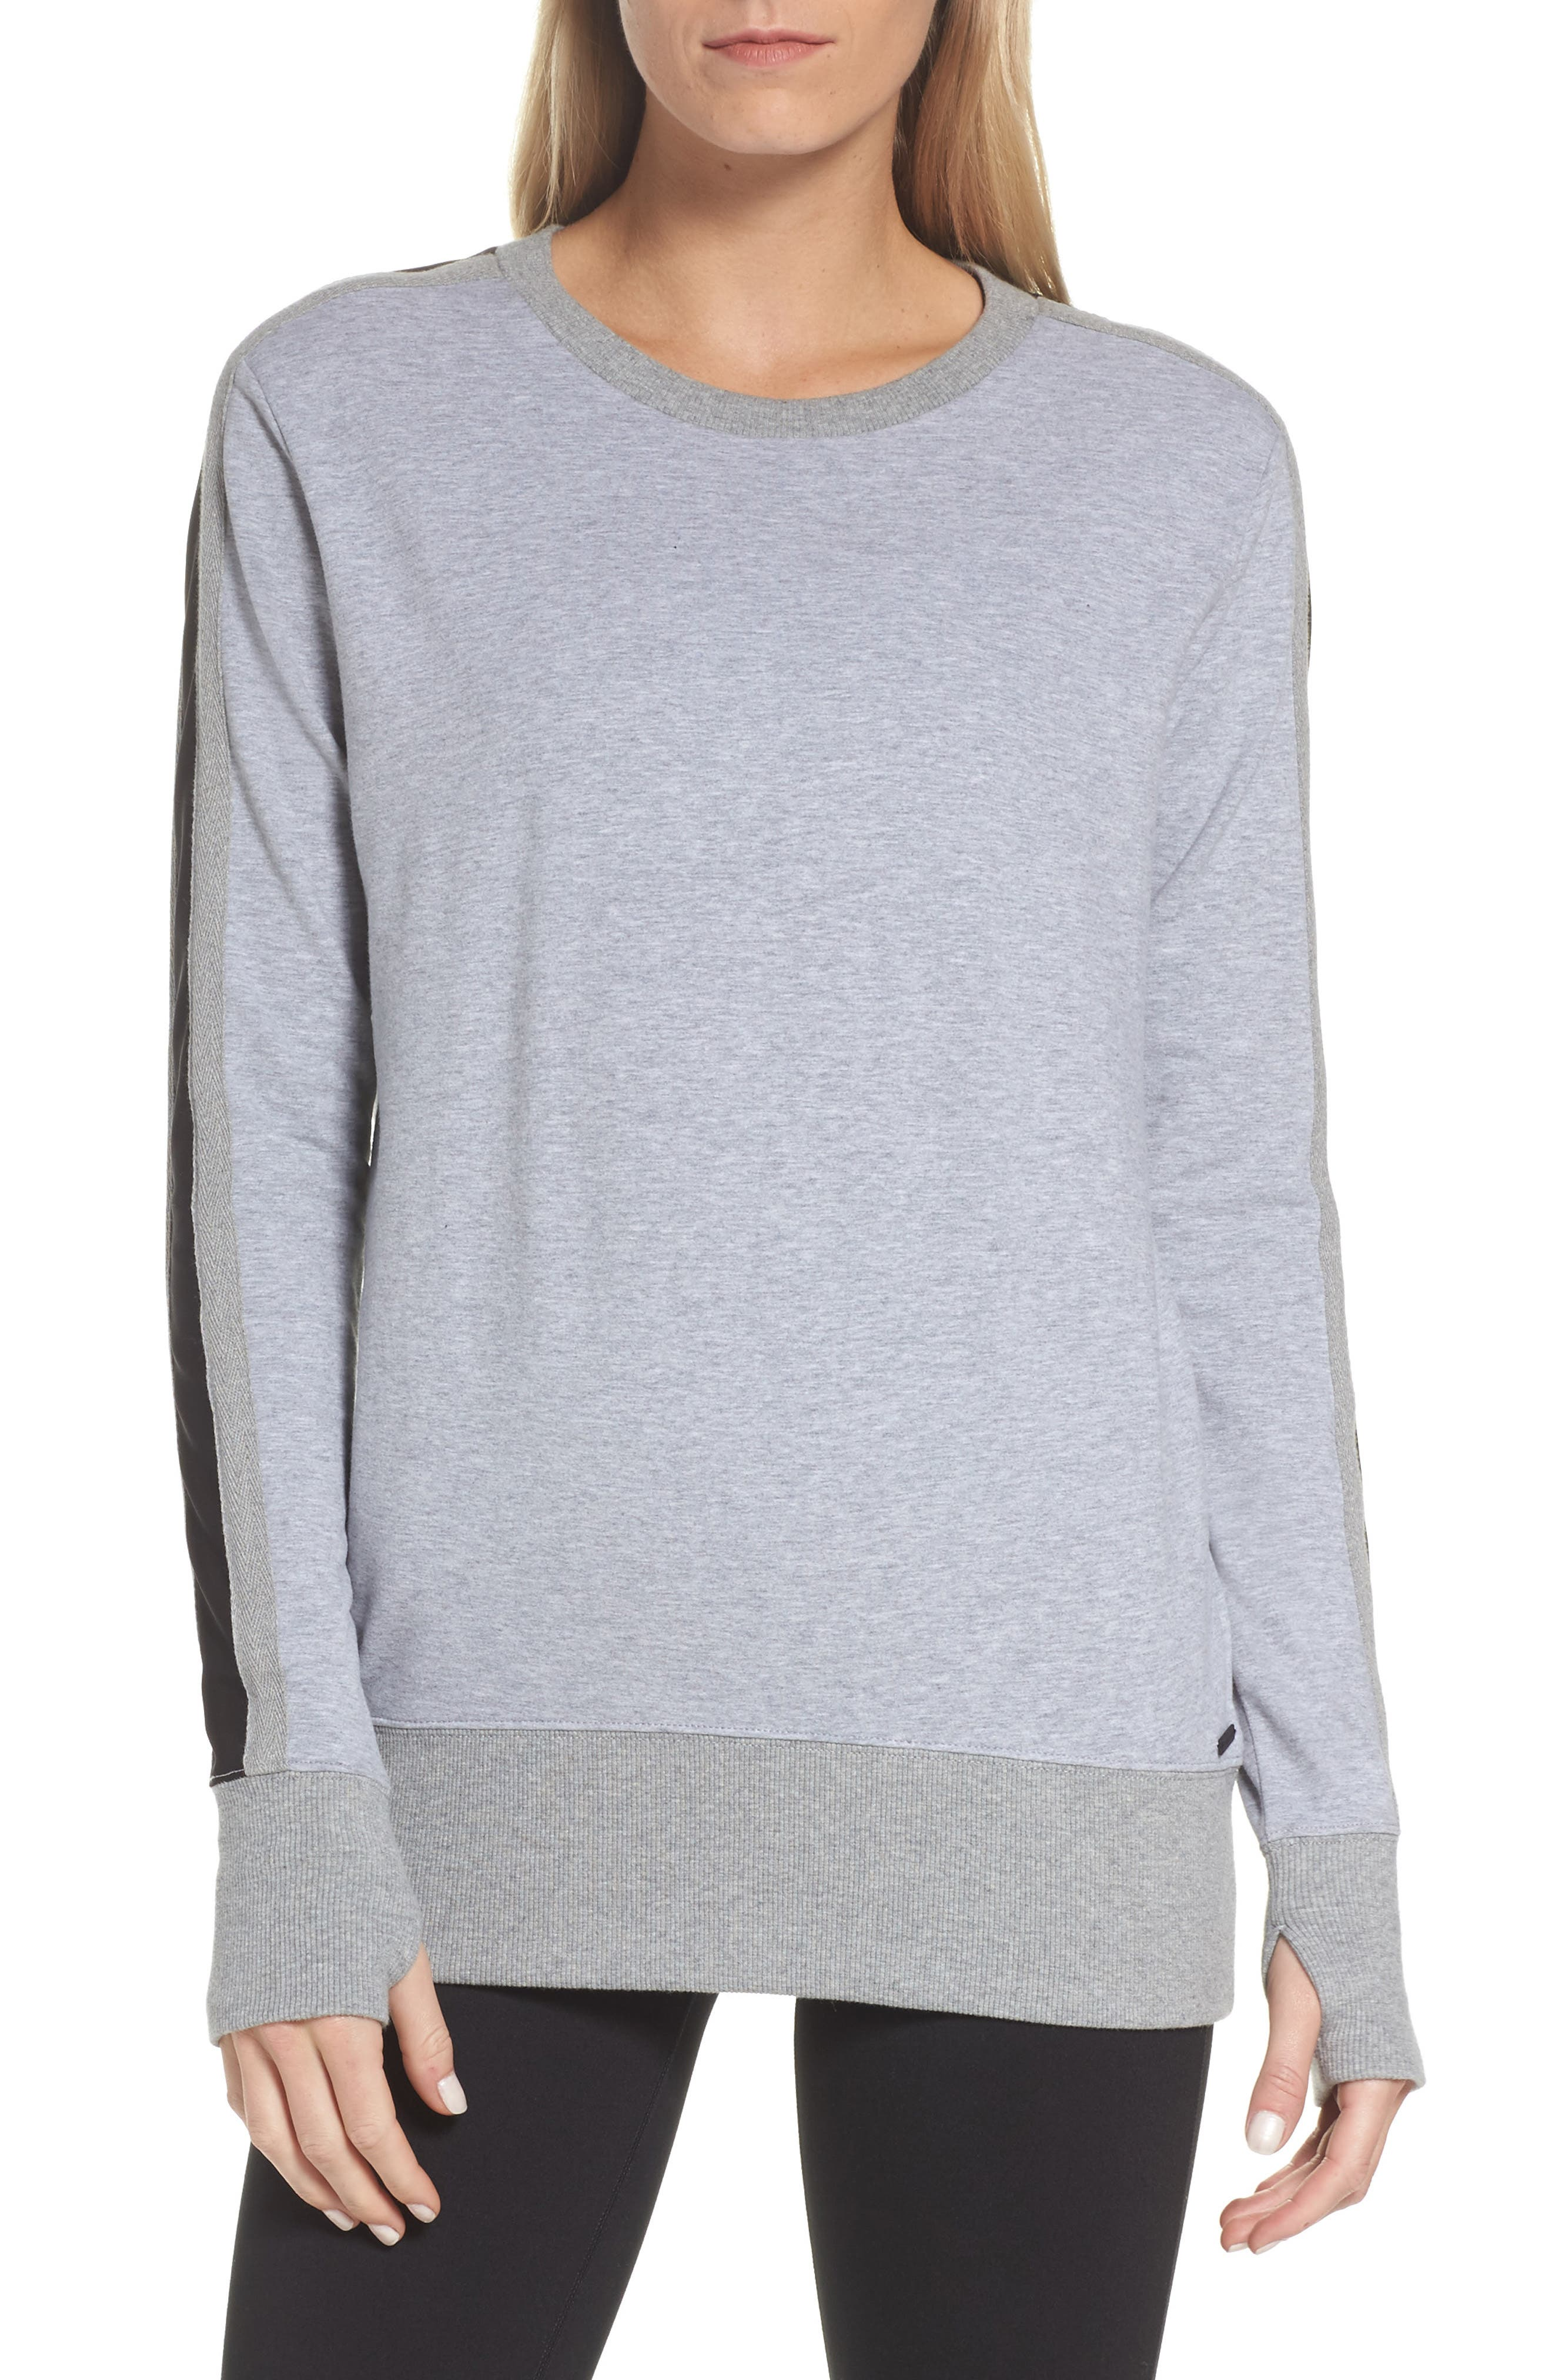 Social Sweatshirt,                         Main,                         color, Heather Grey